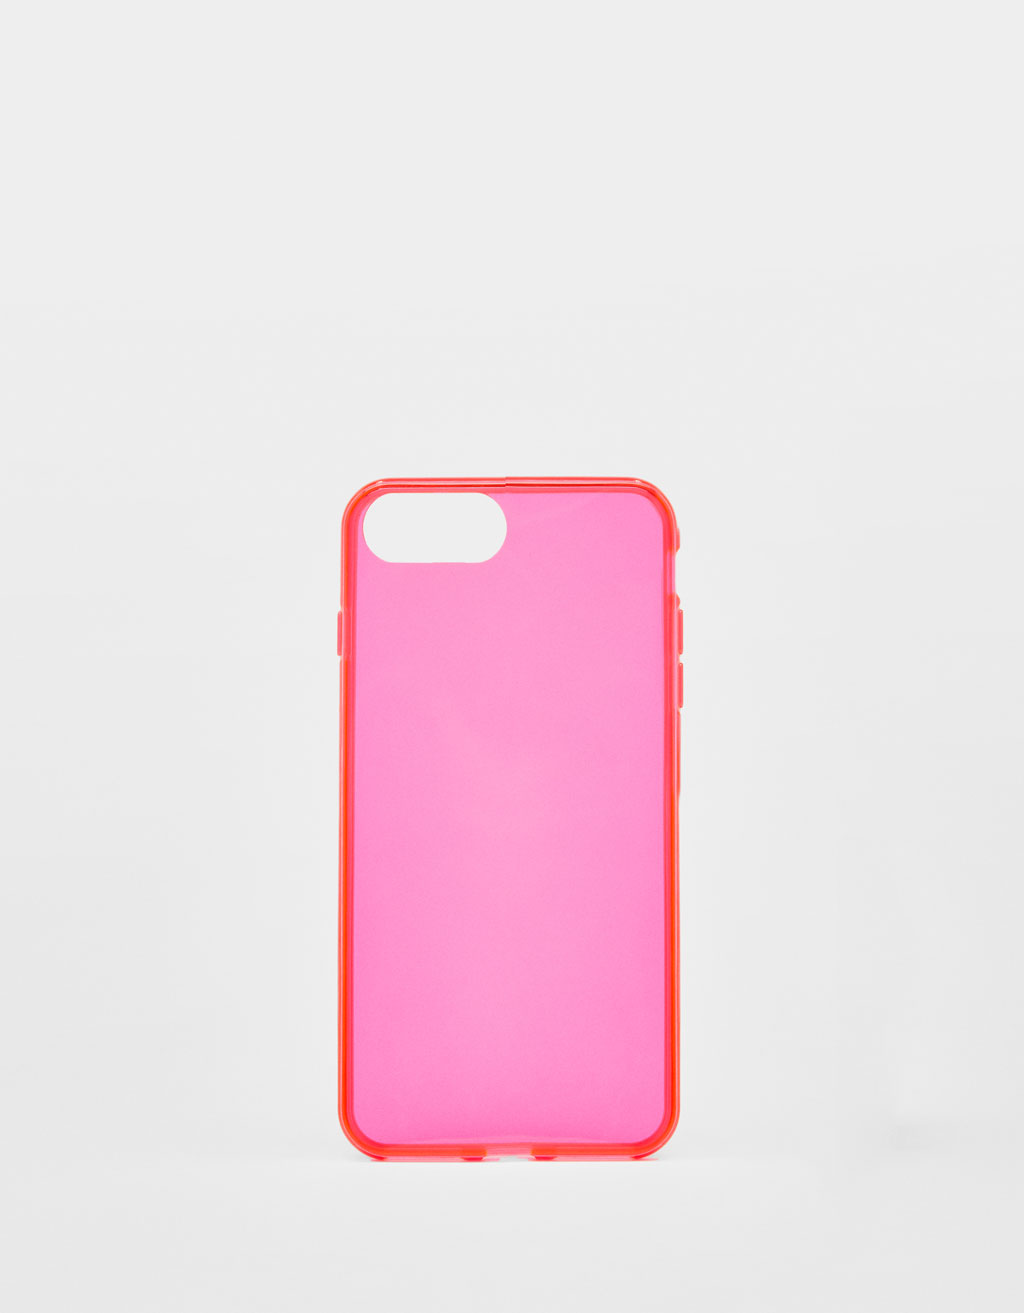 Transparent neon iPhone 6 Plus / 7 Plus / 8 Plus case